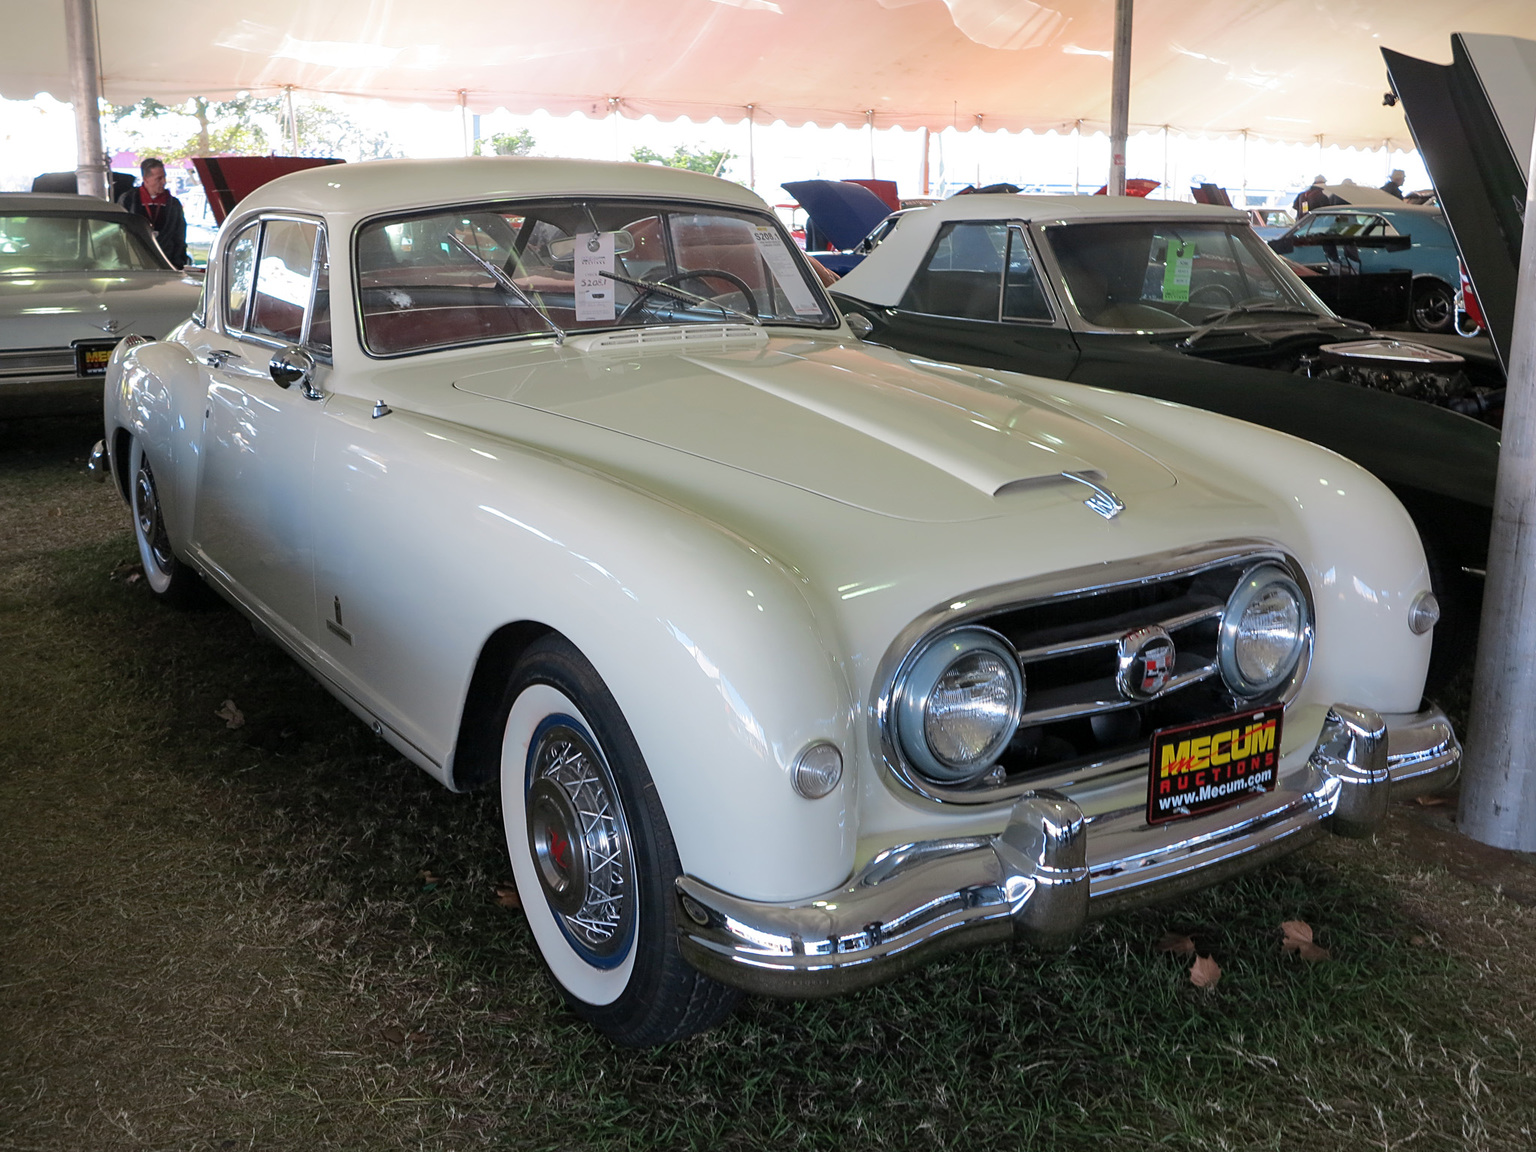 Nash Healey Le Mans Coupe